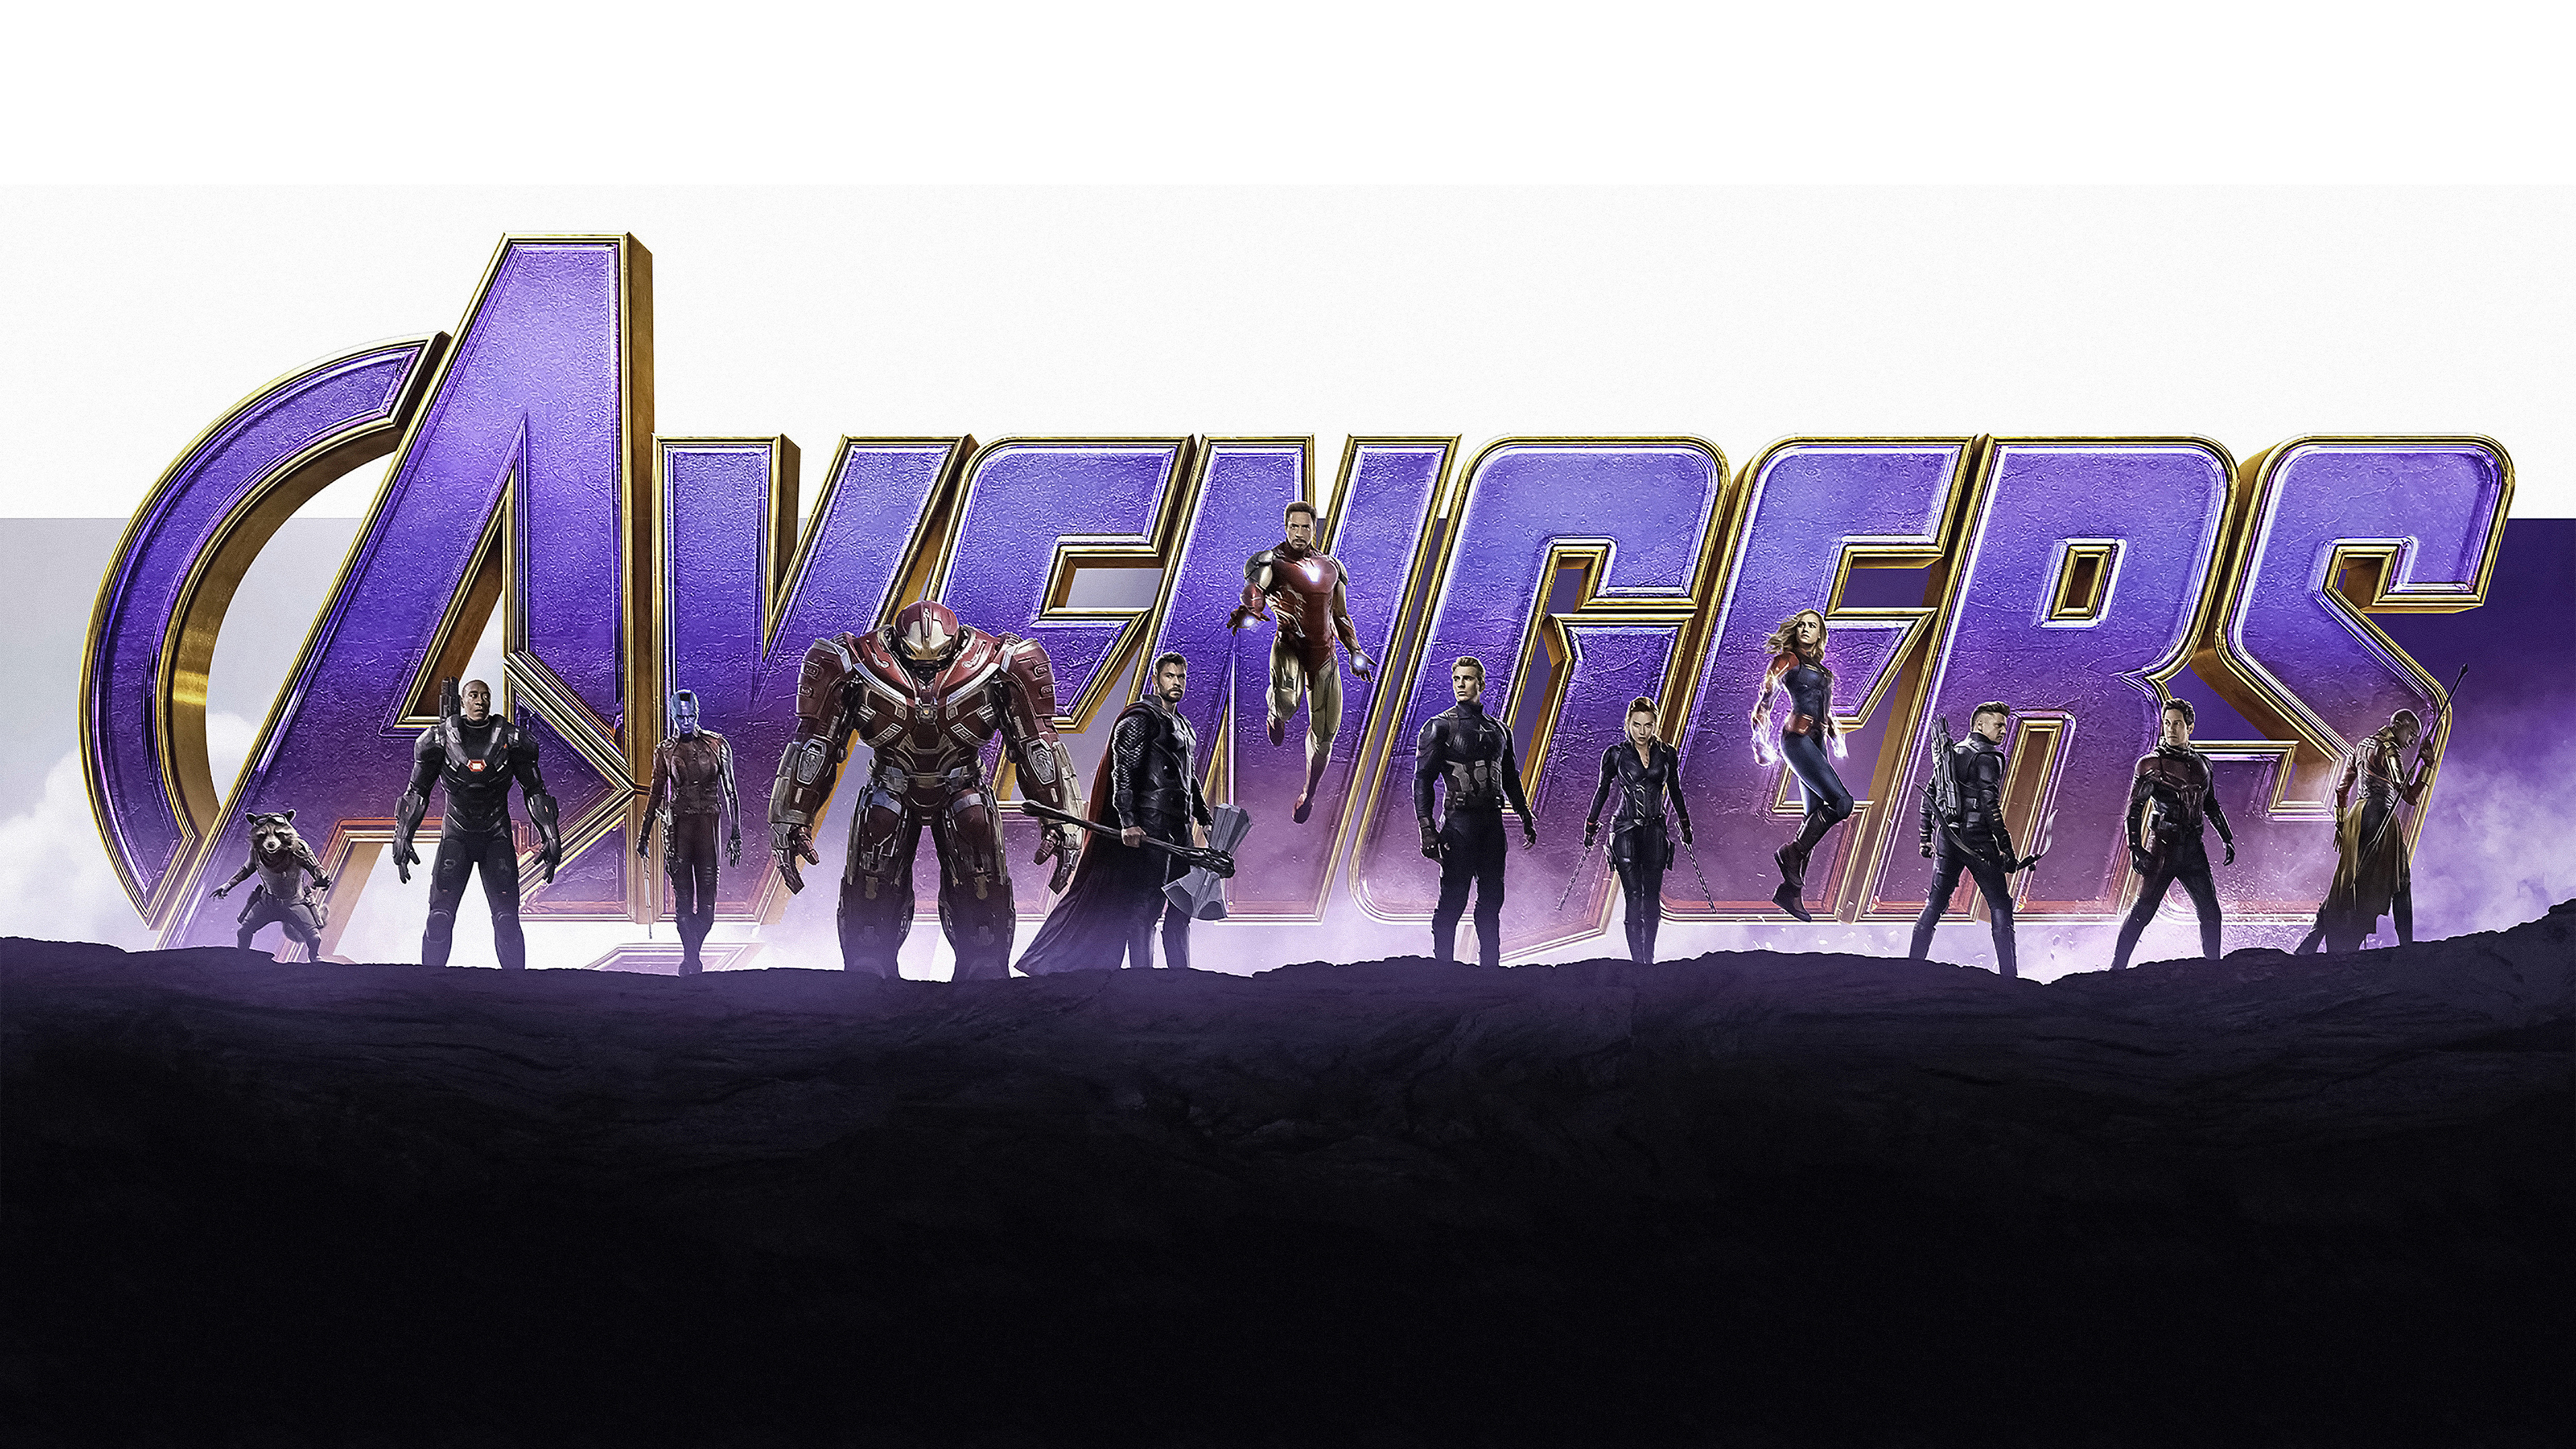 2019 avengers endgame new 4k 1560535033 - 2019 Avengers Endgame New 4k - war machine wallpapers, thor wallpapers, movies wallpapers, iron man wallpapers, hd-wallpapers, captain america wallpapers, avengers endgame wallpapers, 4k-wallpapers, 2019 movies wallpapers